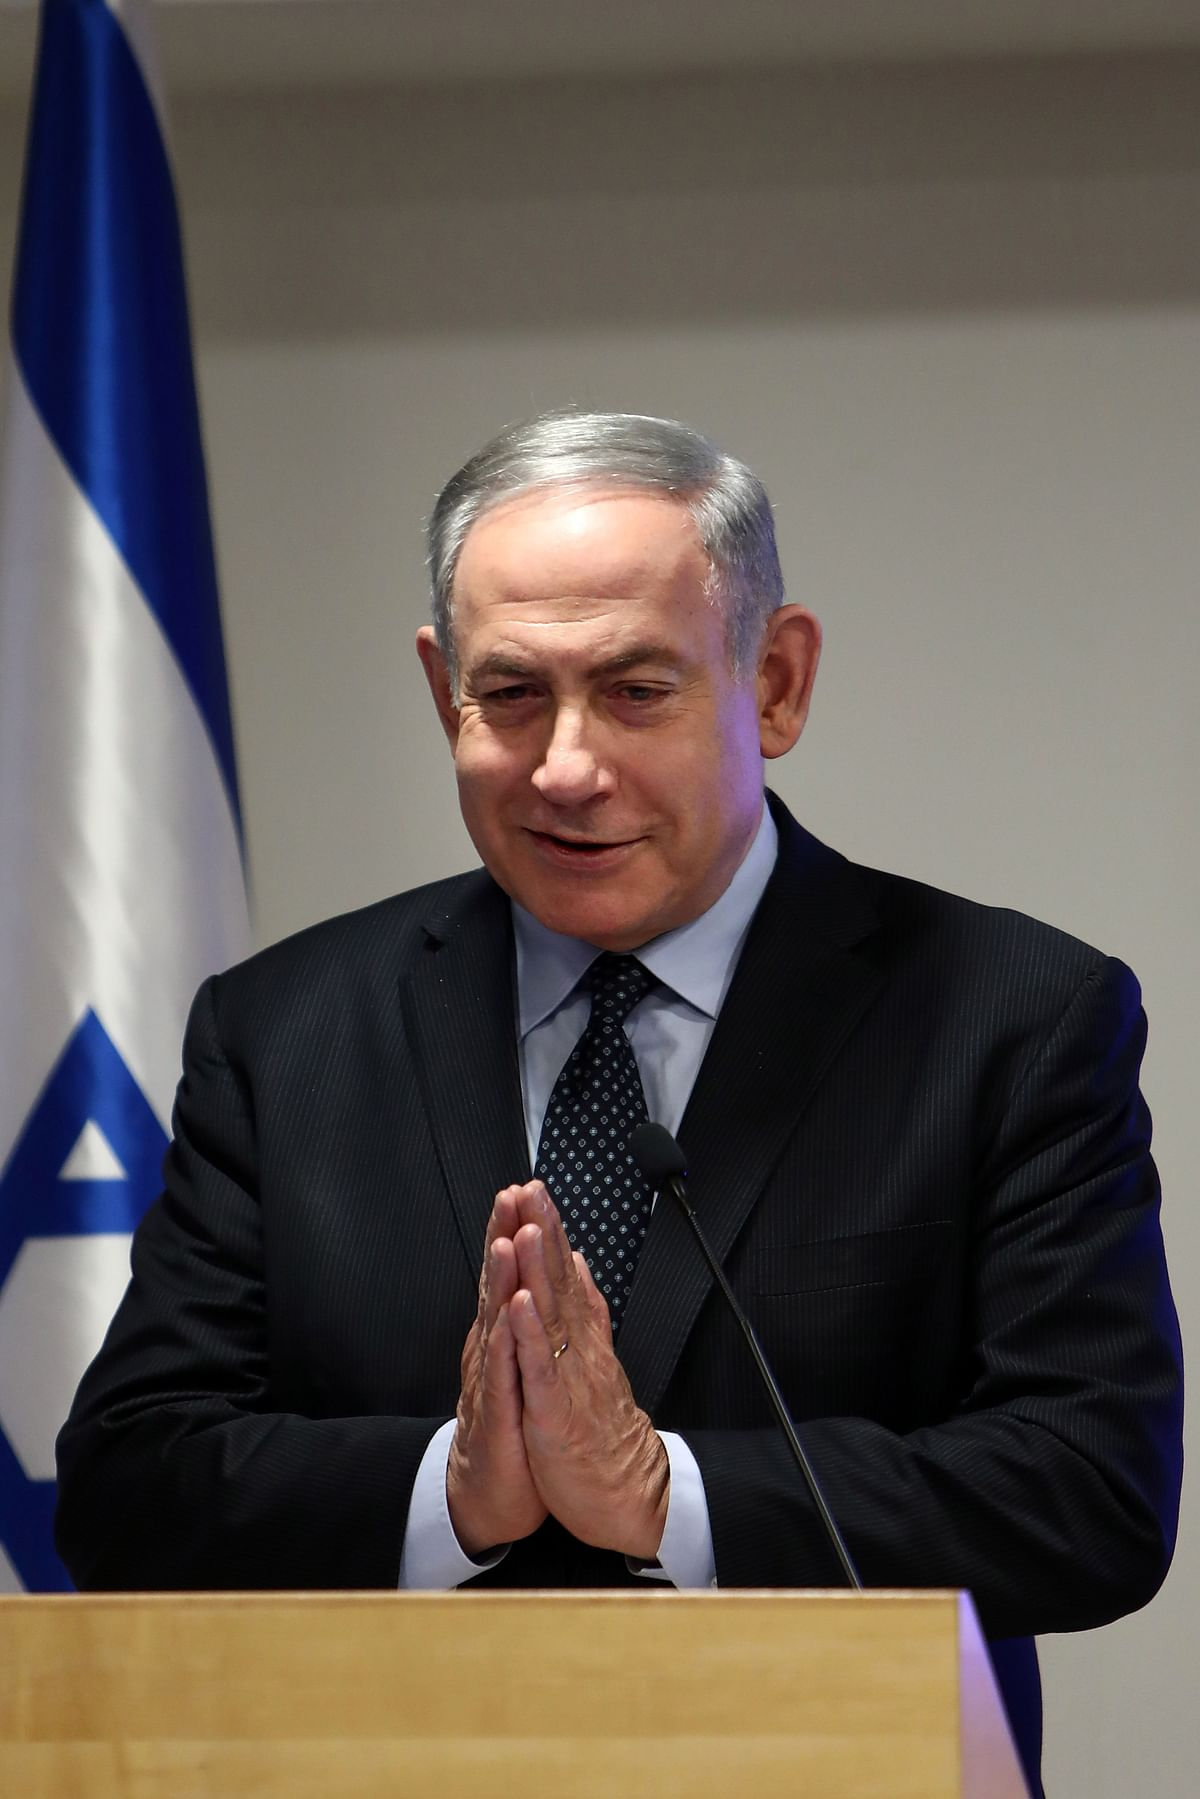 Netanyahu demonstrates how the Indians greet each other